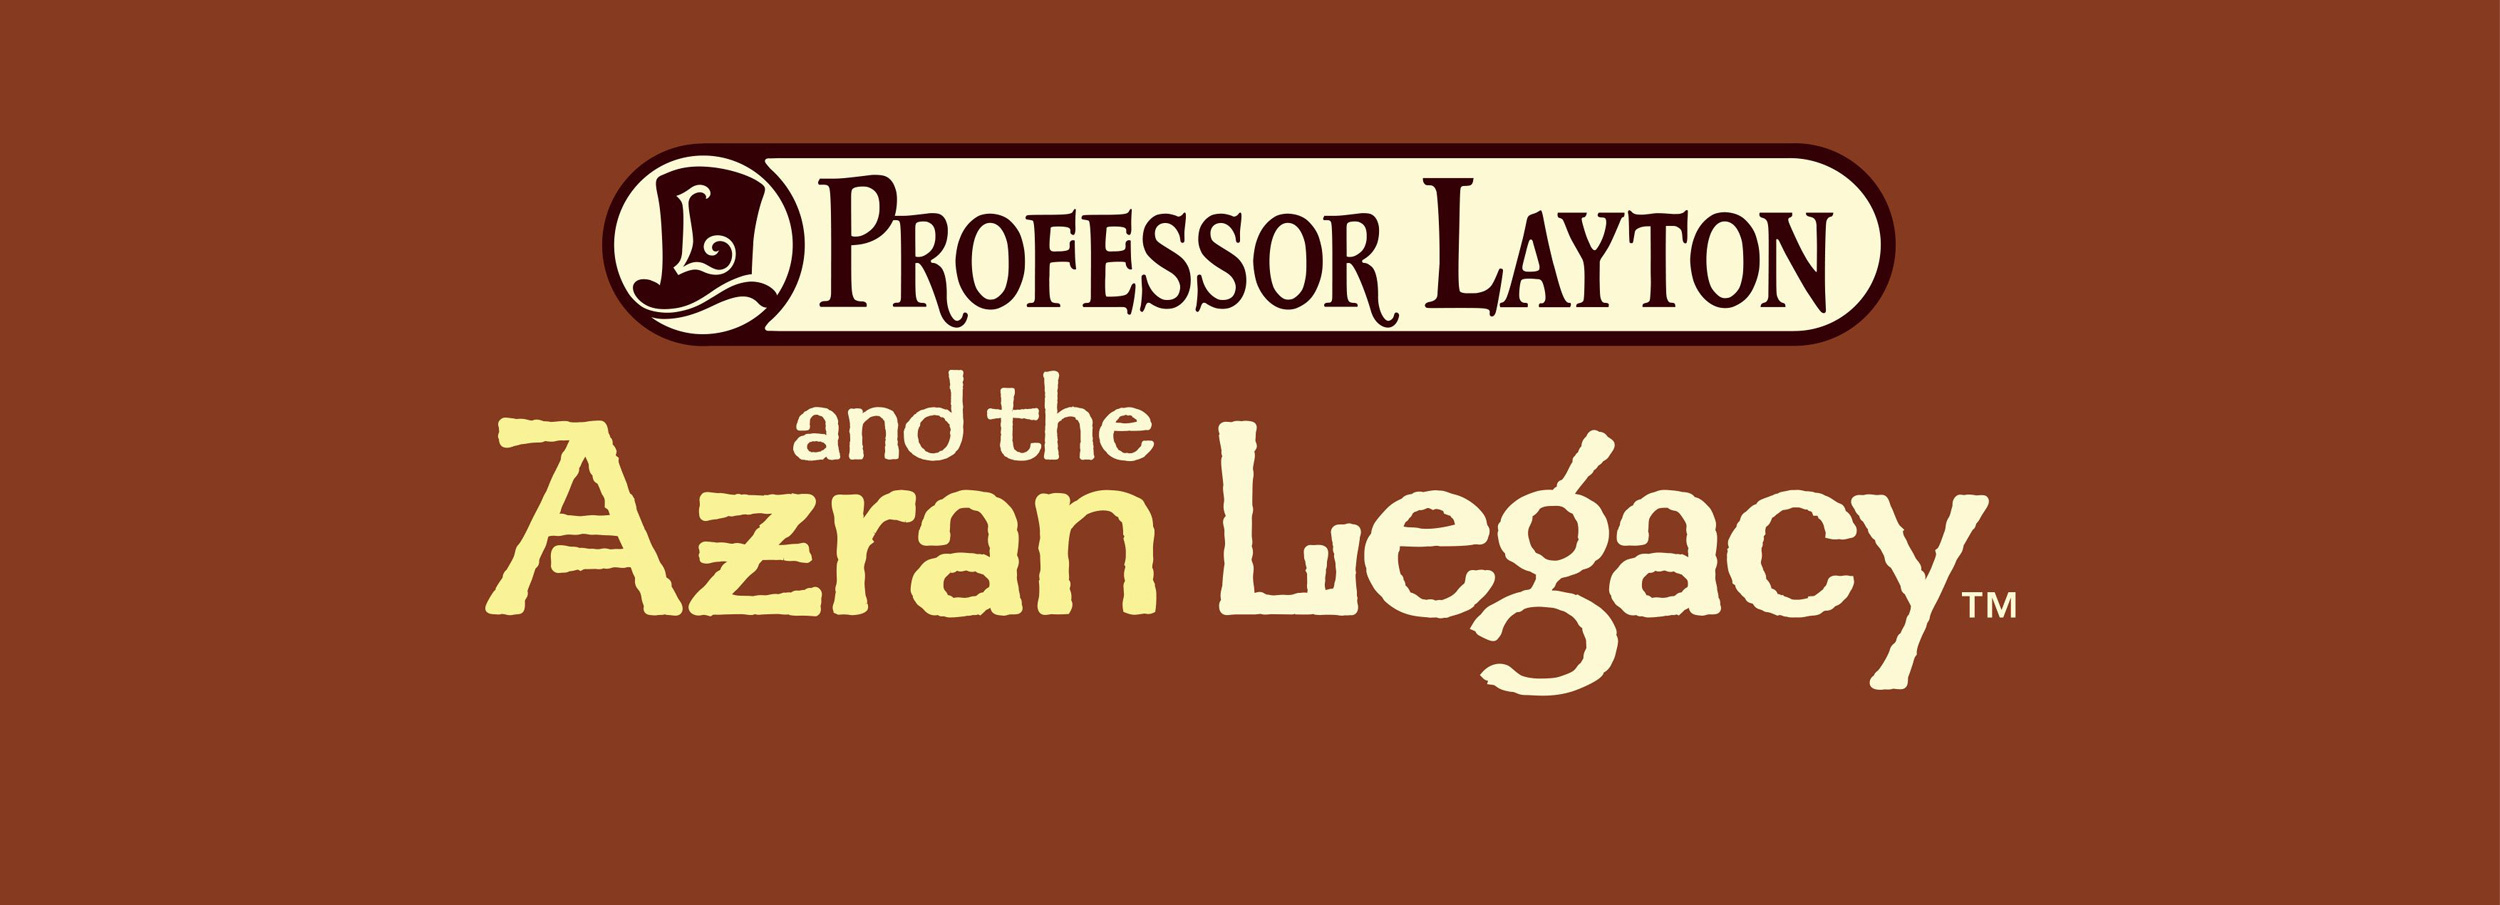 Professor Layton and the Azran Legacy from Nintendo